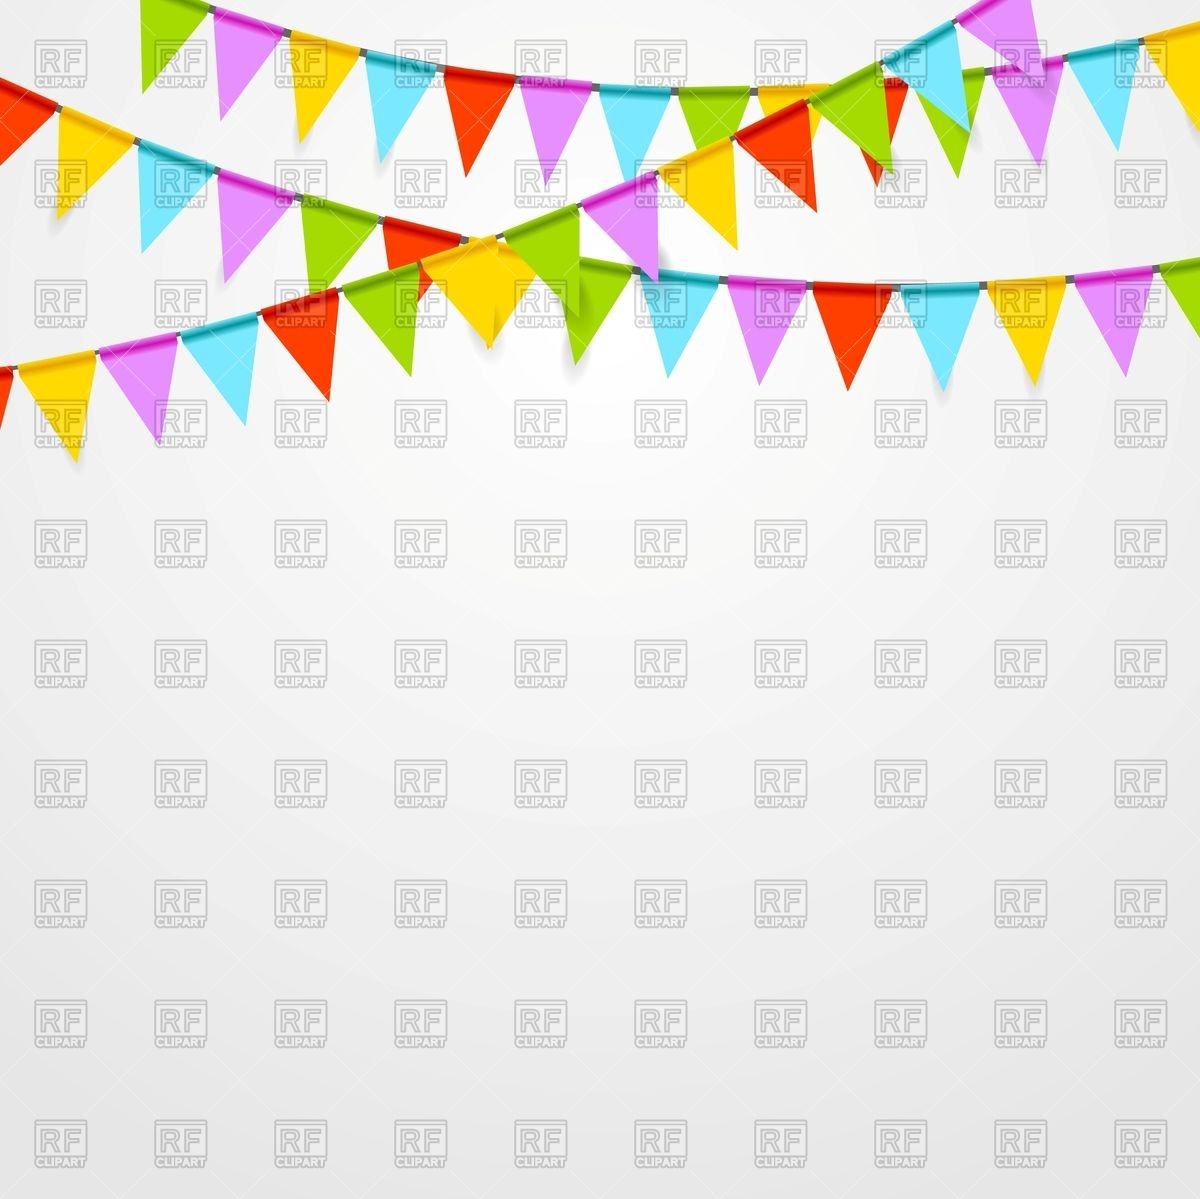 Party flags background Vector Image #75302.